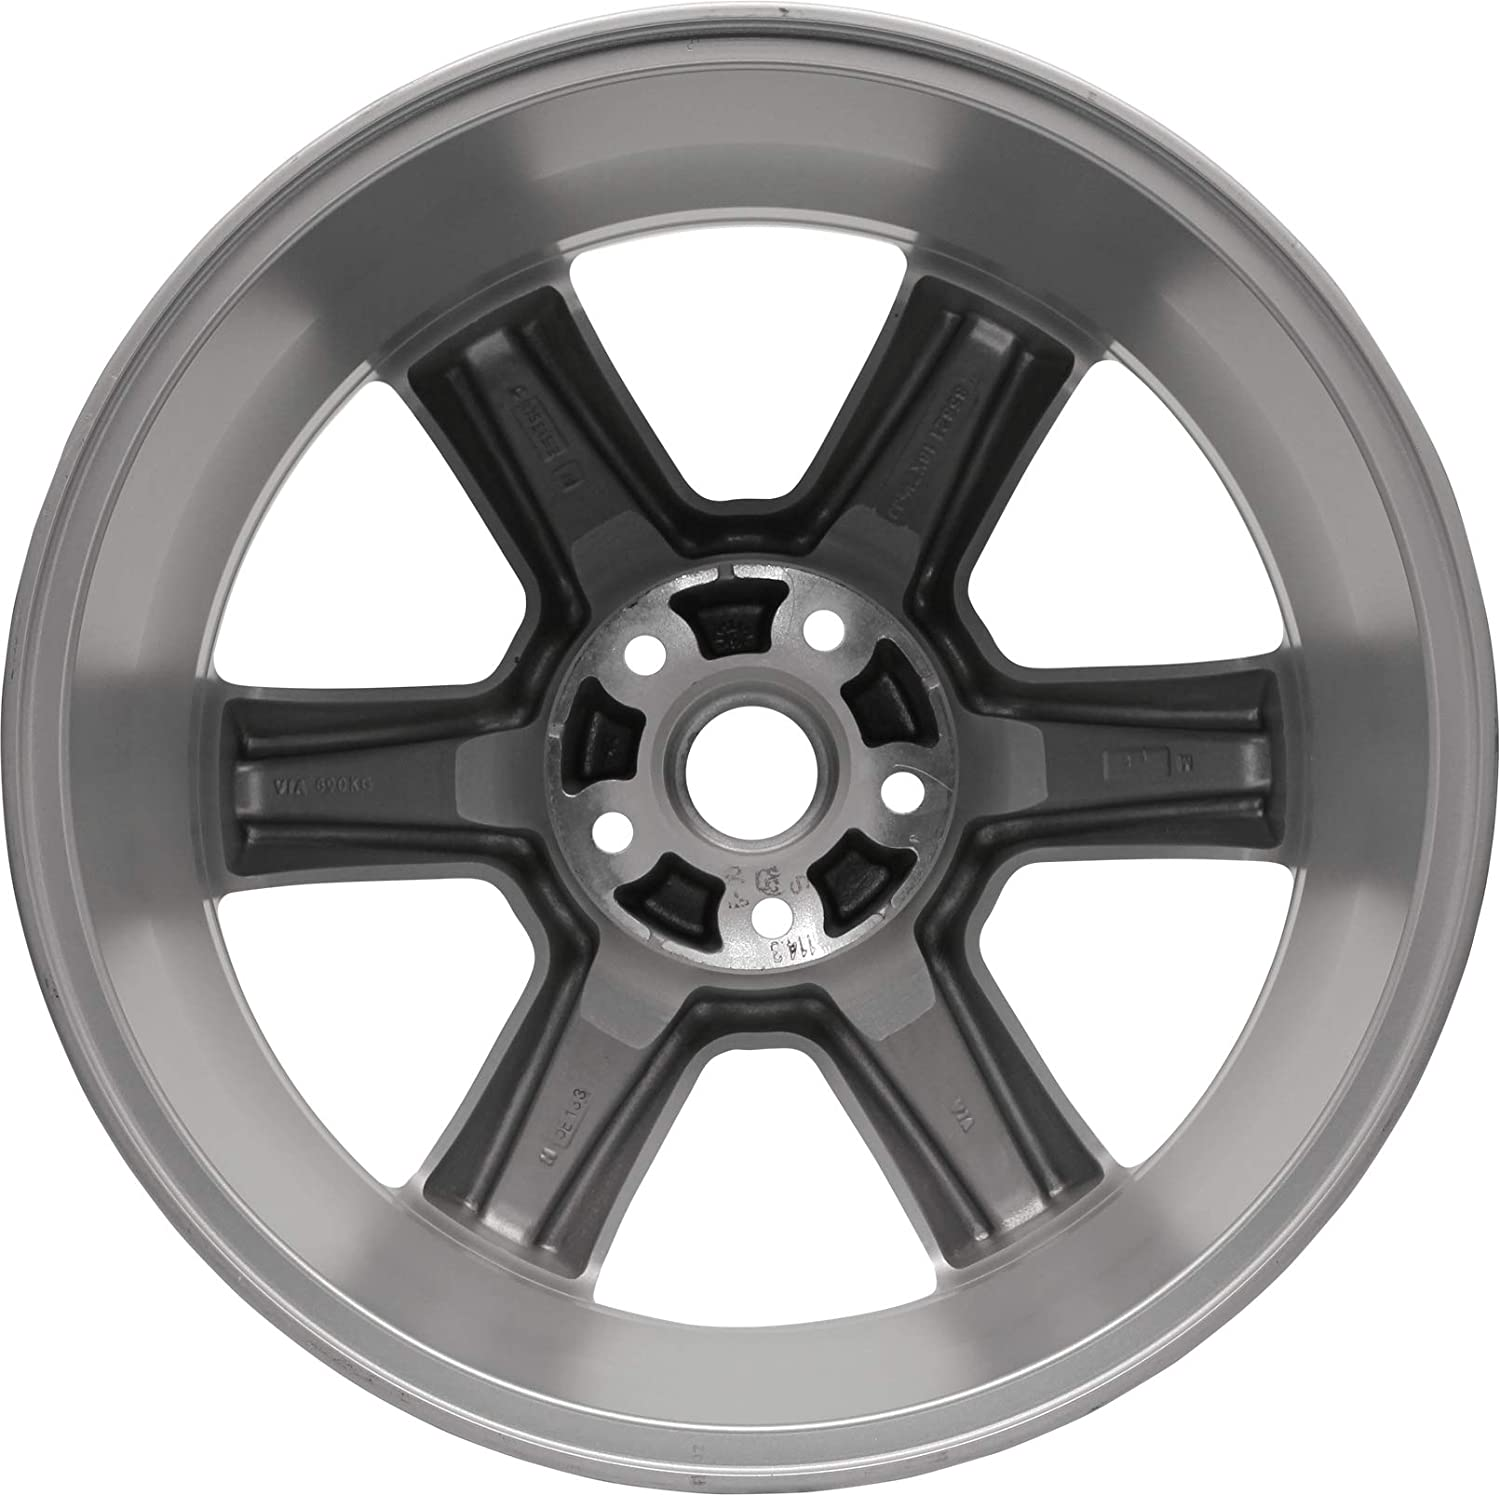 Partsynergy Replacement For New Aluminum Alloy Wheel Rim 18 Inch Fits 2003-2005 Nissan Murano 5-115mm 10 Spokes